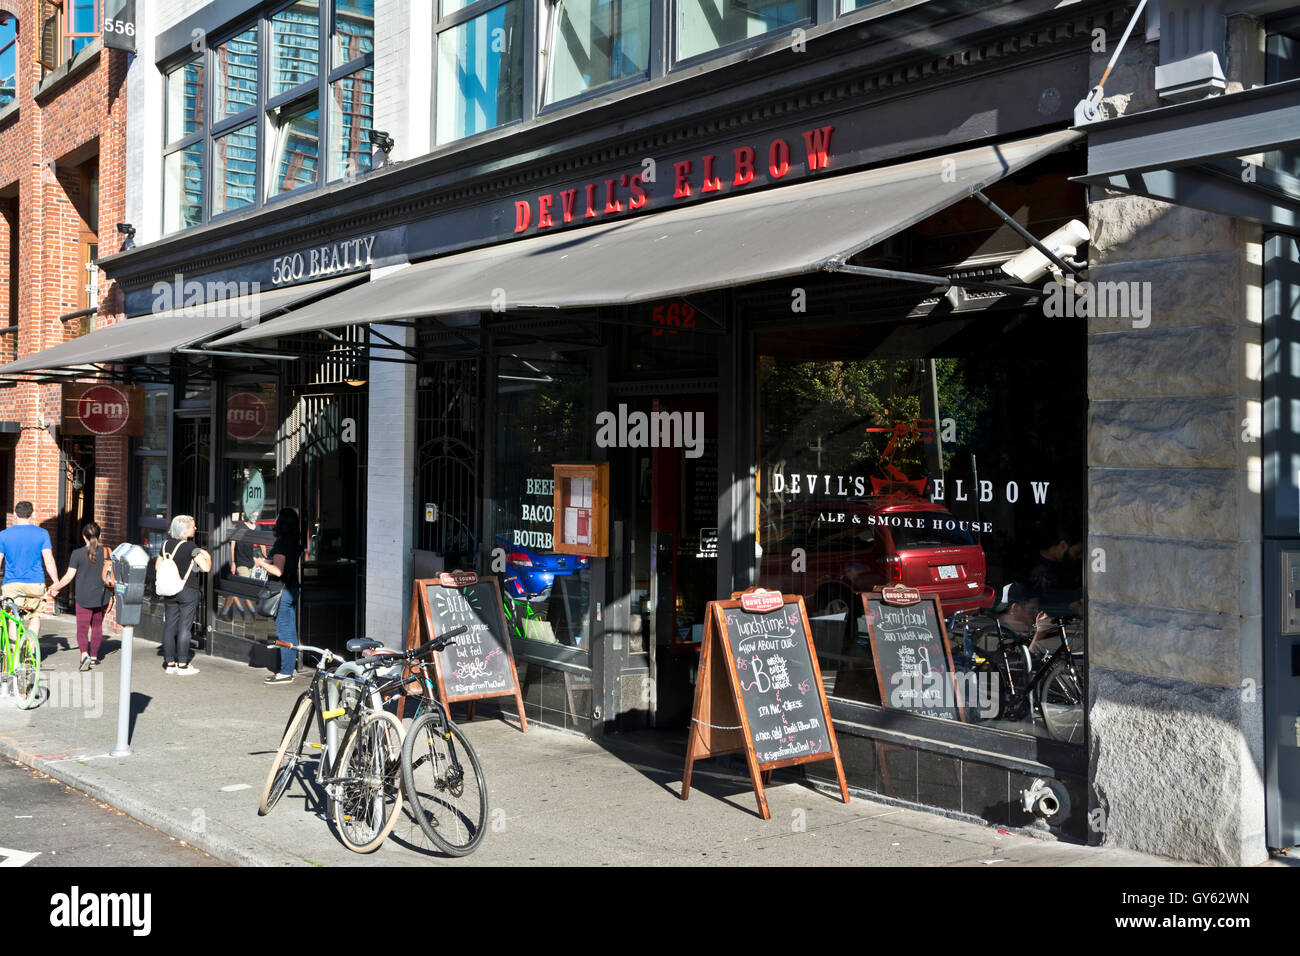 Devil's Elbow Ale and Smokehouse restaurant in downtown Vancouver on Beatty Street. - Stock Image